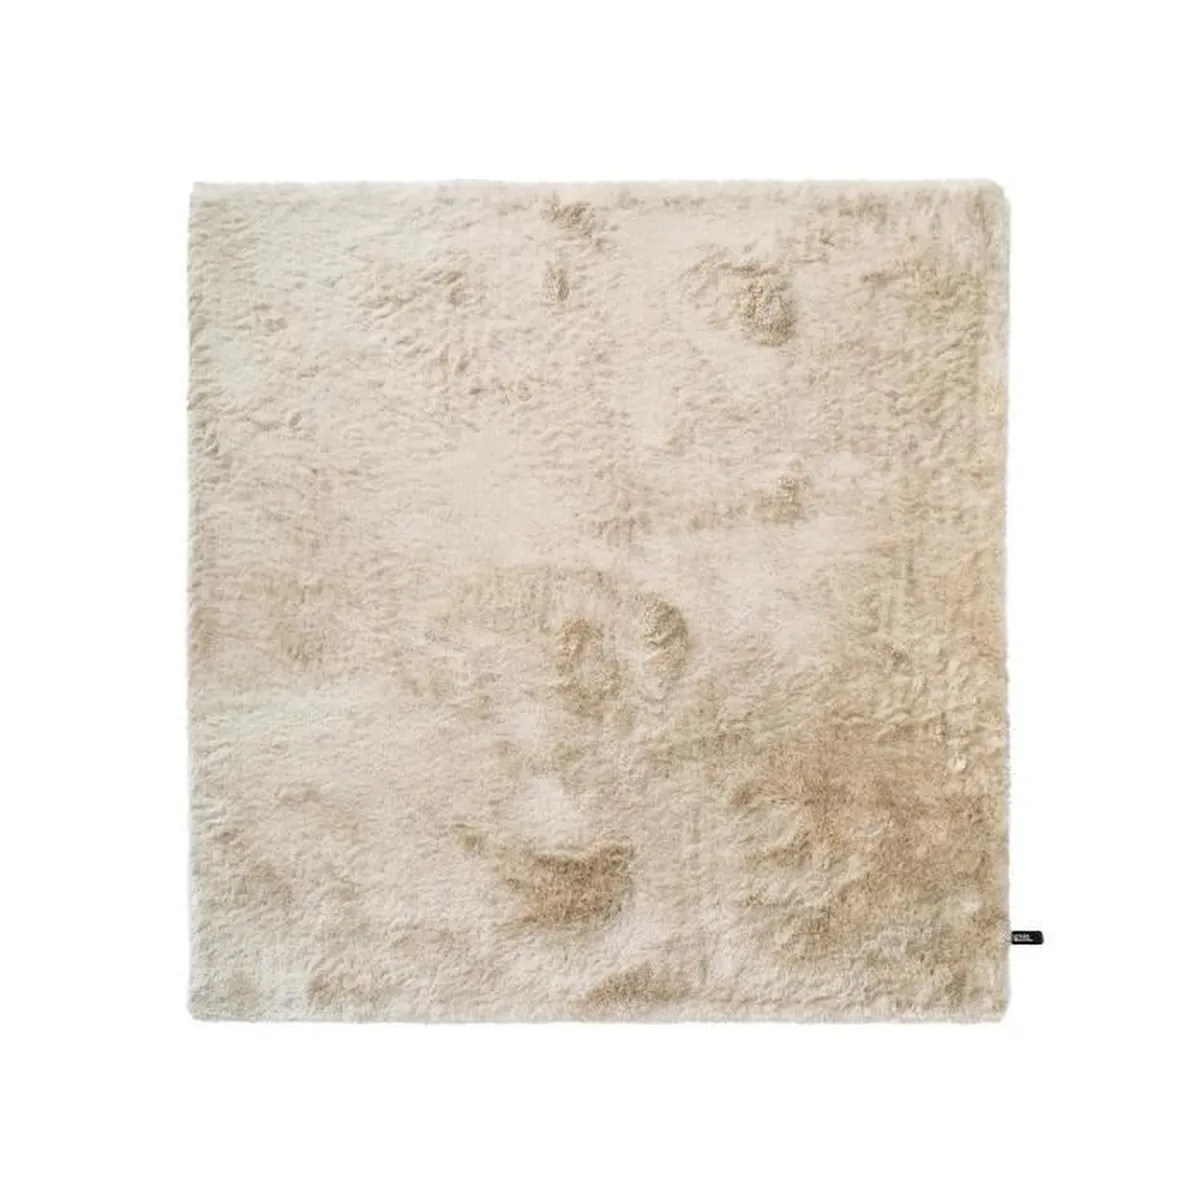 Tapis Salon Poil Long Tapis Shaggy à Poils Longs Whisper Beige 200x200 Cm